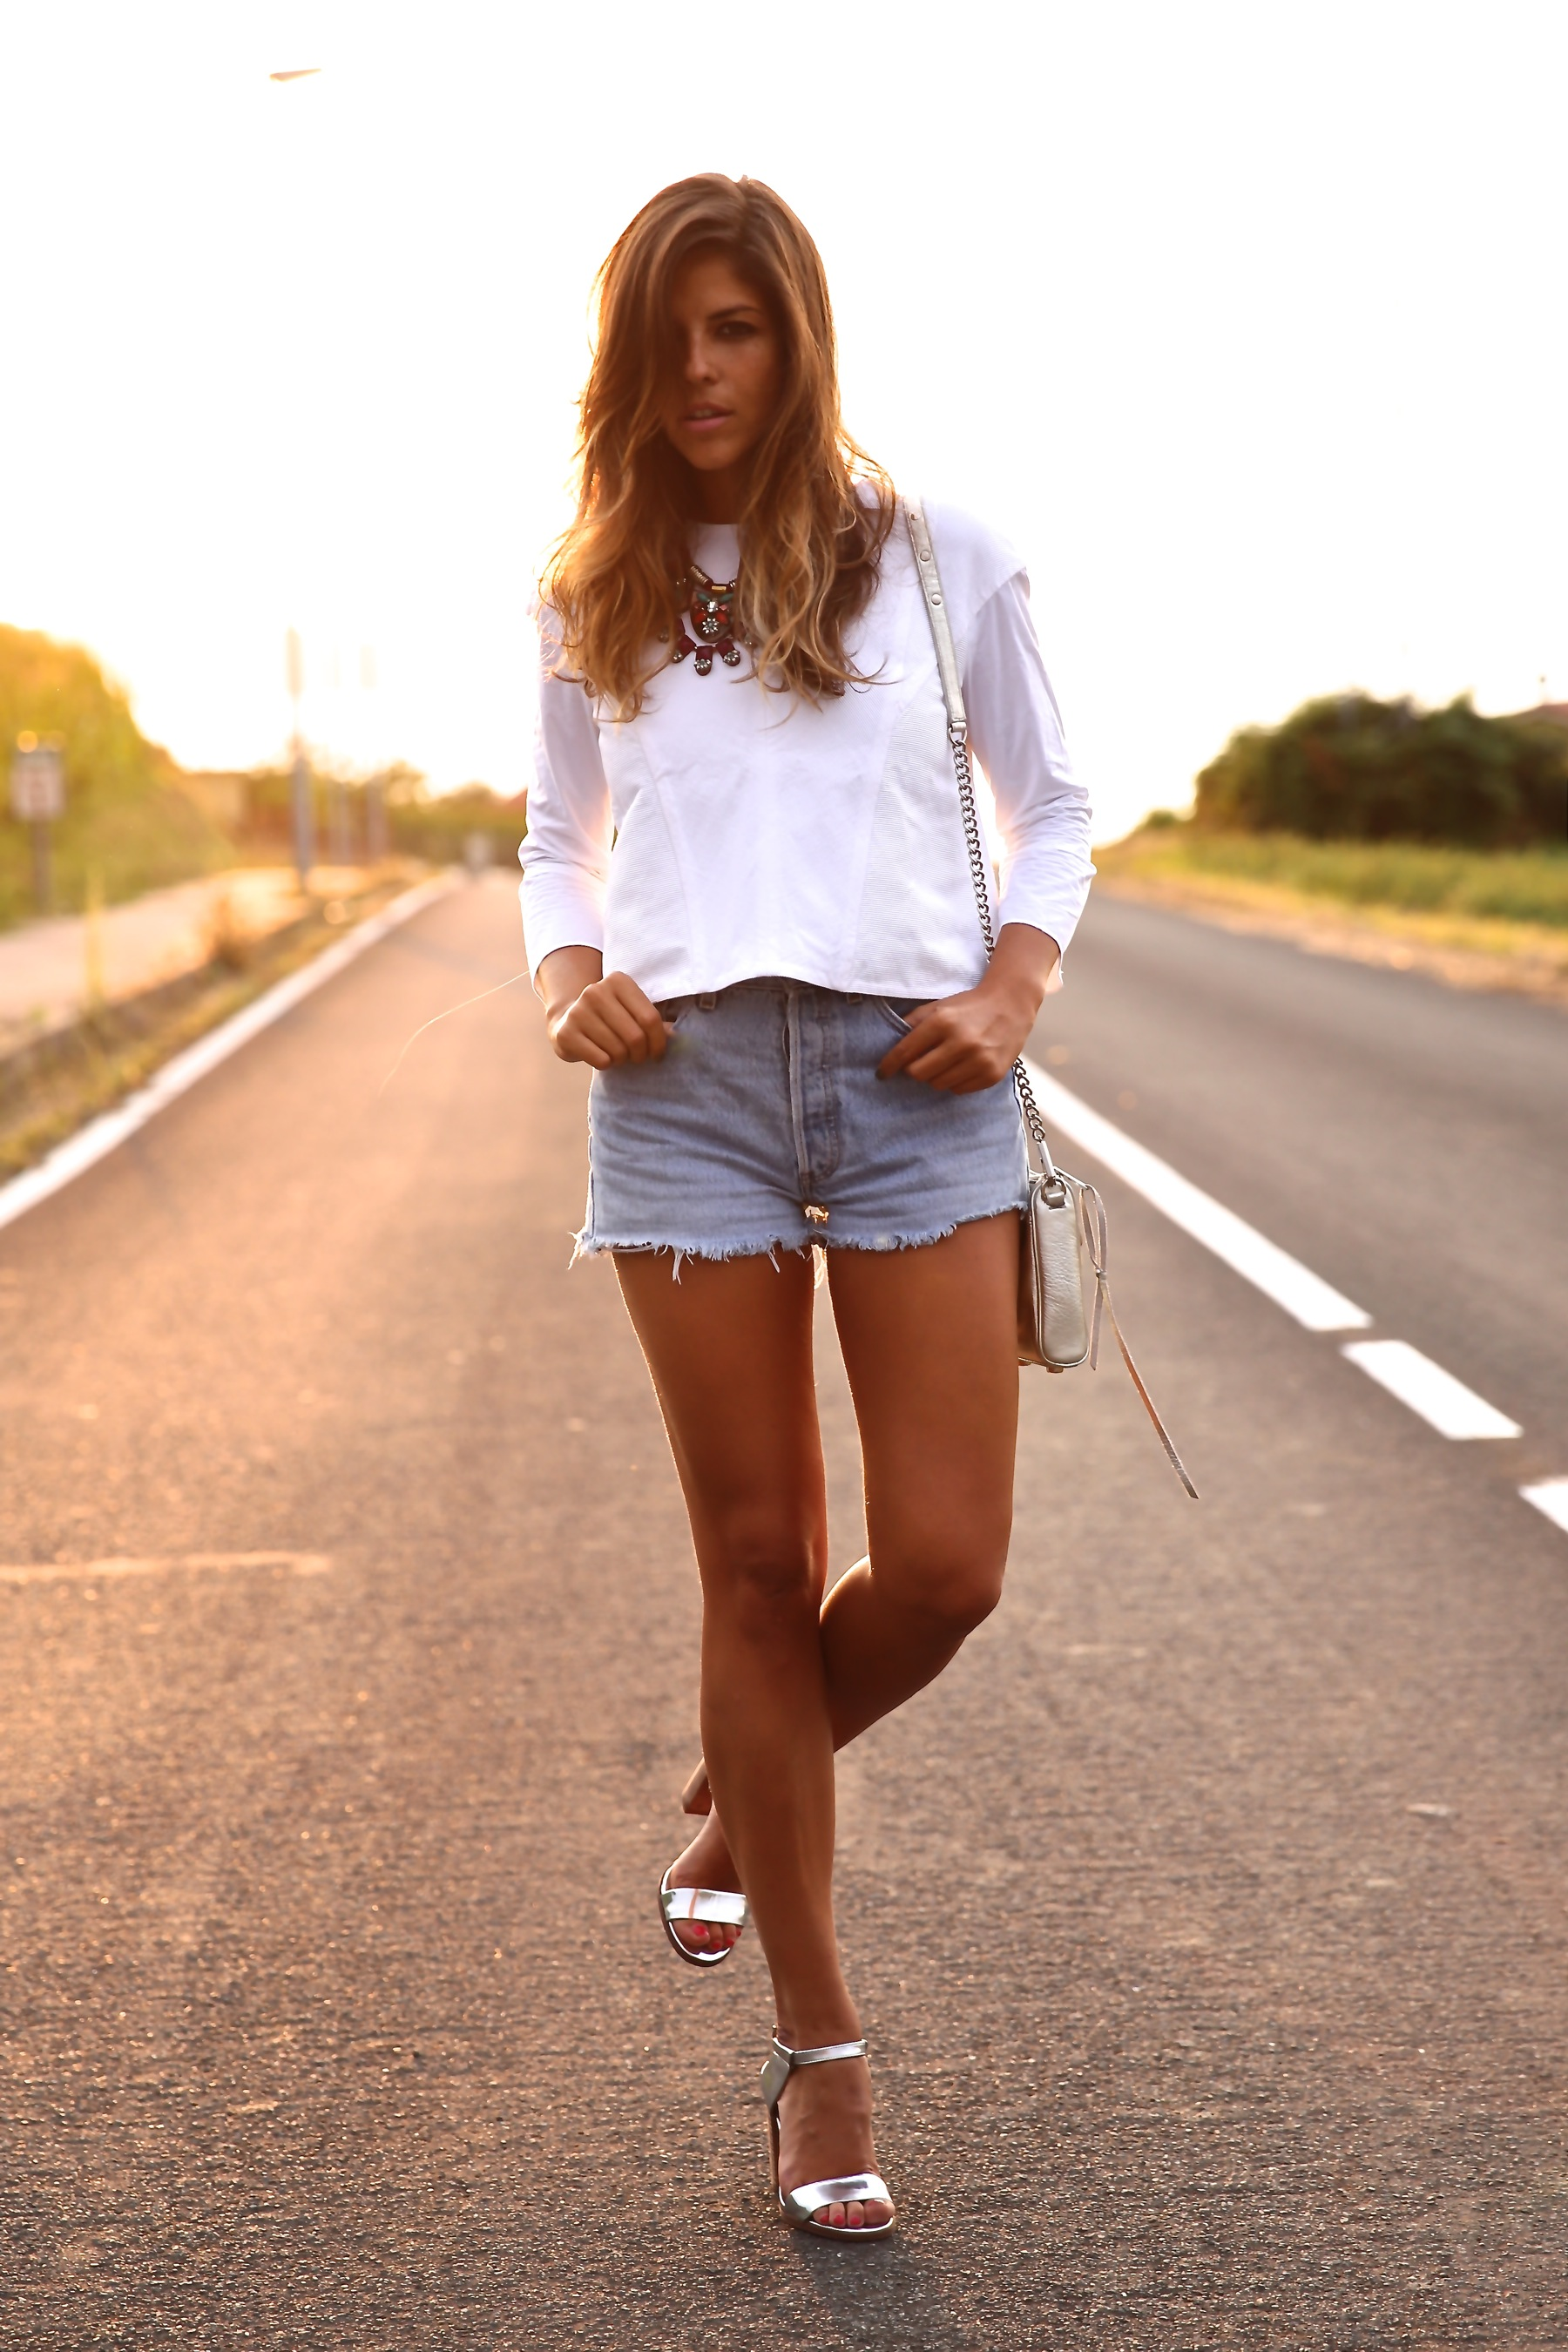 trendy_taste-look-outfit-street_style-ootd-blog-blogger-fashion_spain-moda_españa-coach-silver_sandals-sandalias_plata-white_top-top_blanco-levi's-denim_shorts-shorts_vaqueros-14